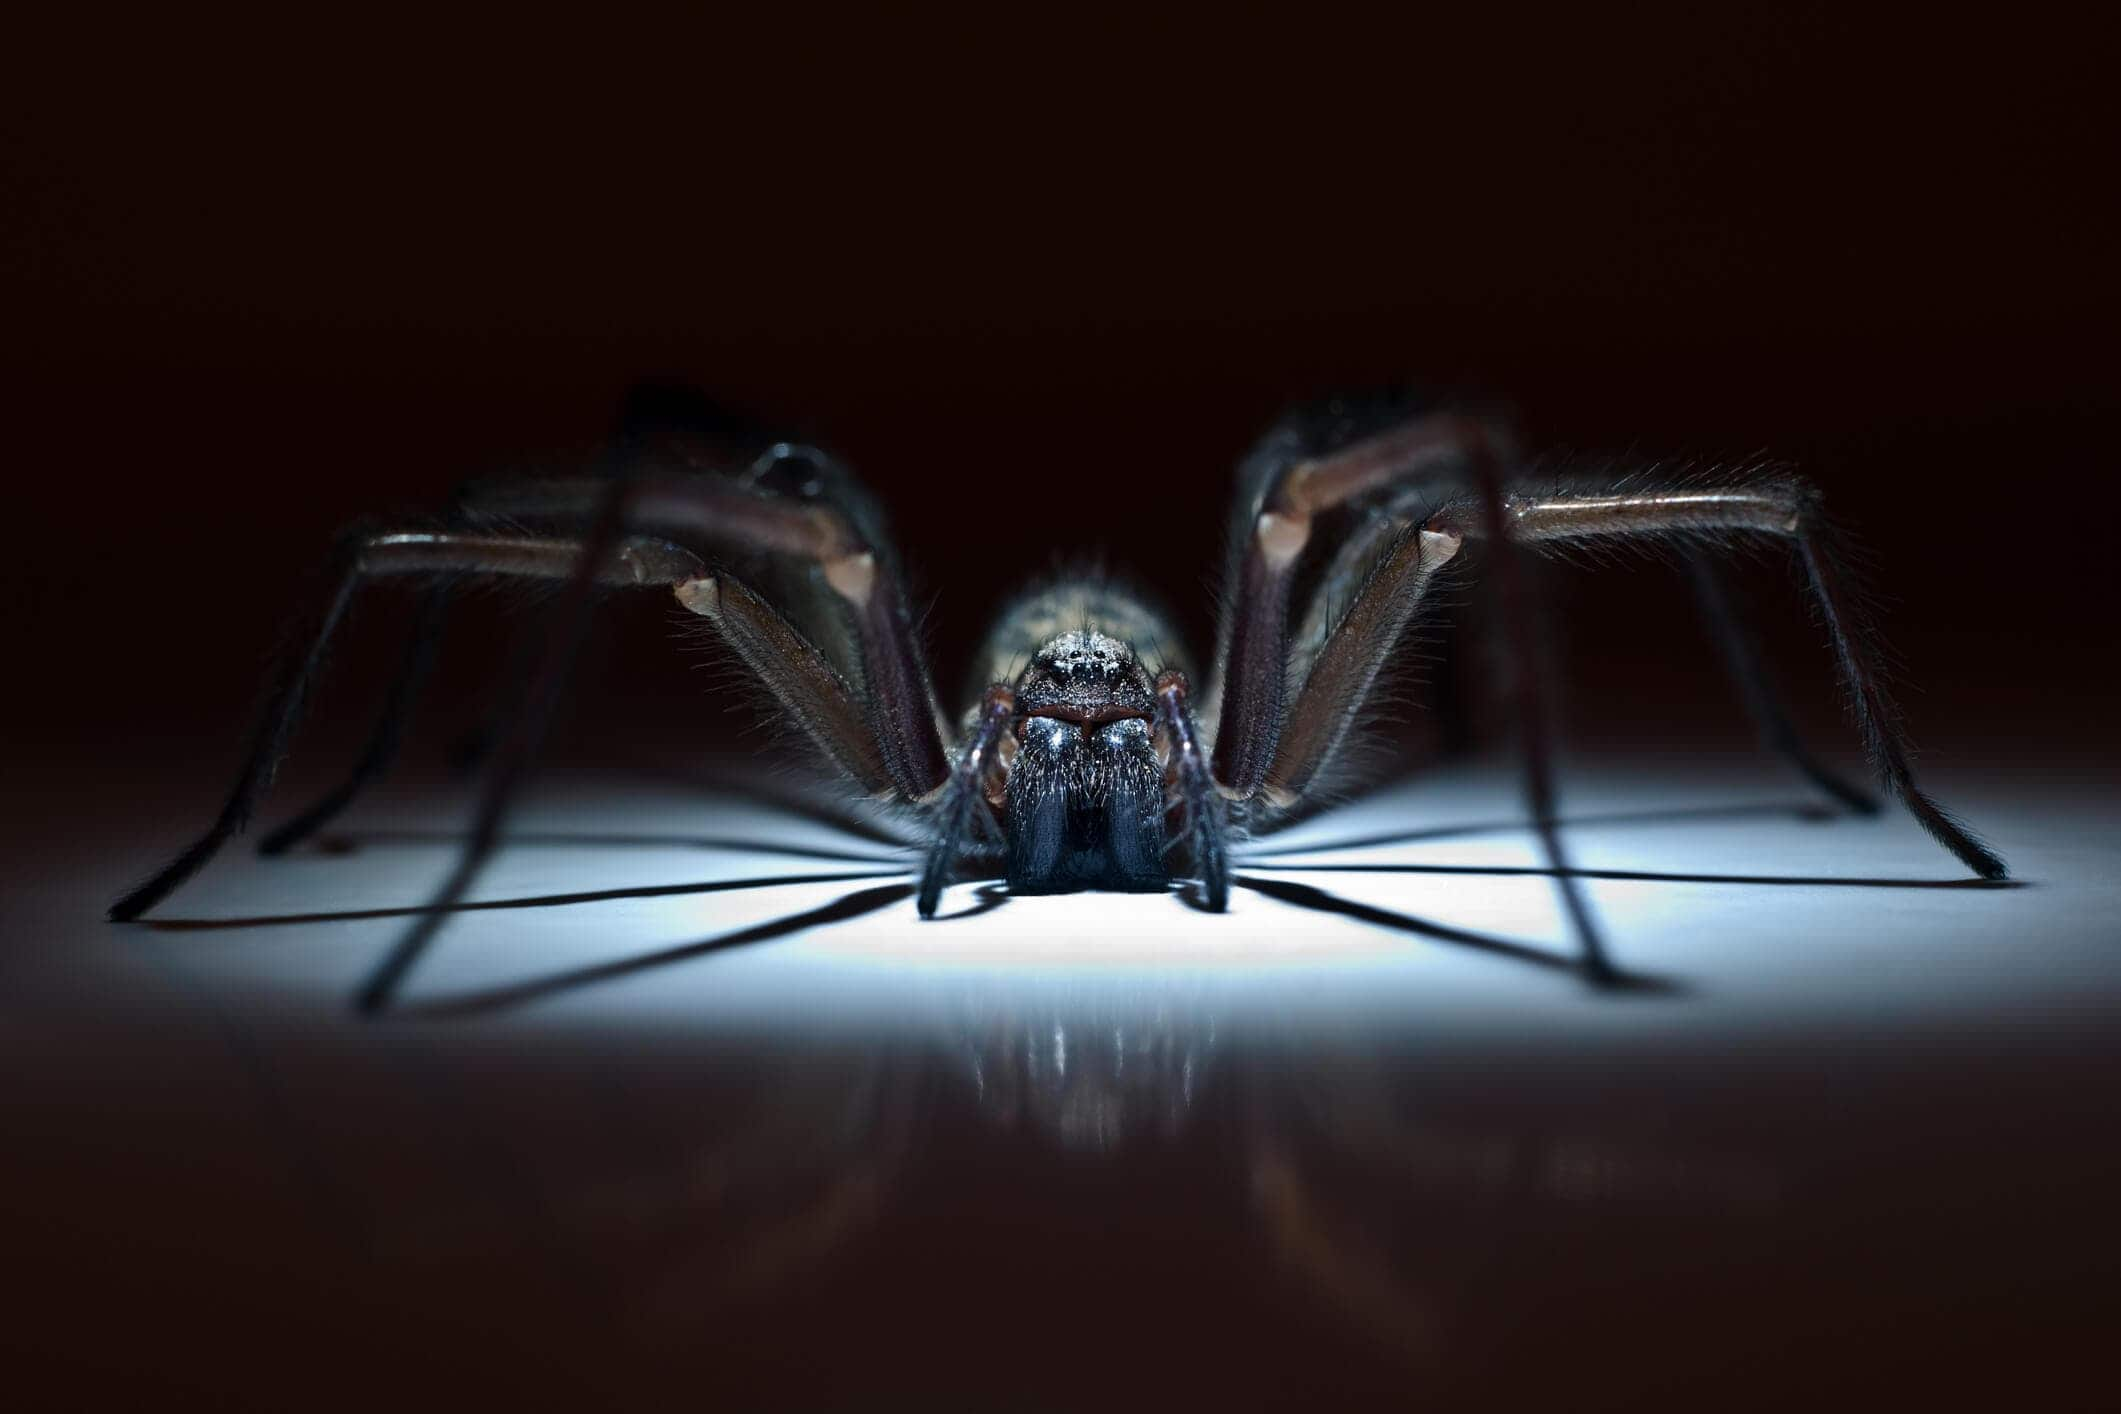 Scary spider hiding in the darkness on Halloween.